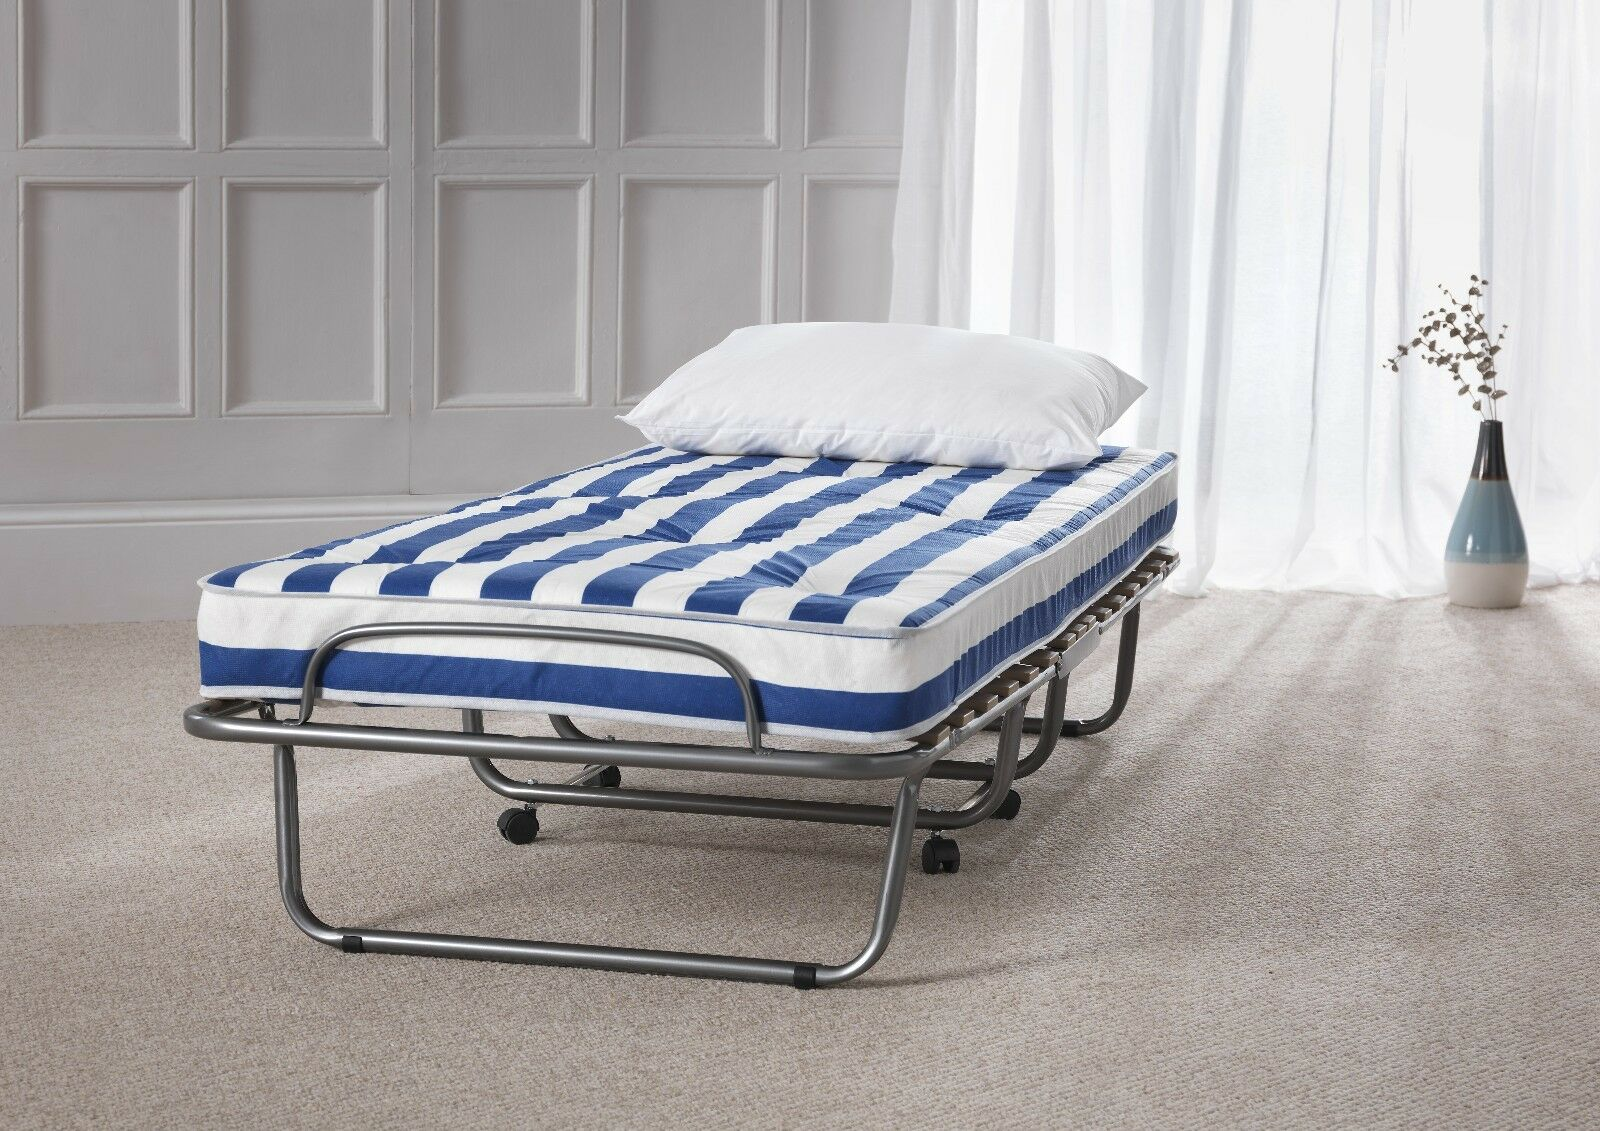 - Luthor Folding Single Guest Bed Fold Away With Coil Sprung Mattress Slats  Metal EBay